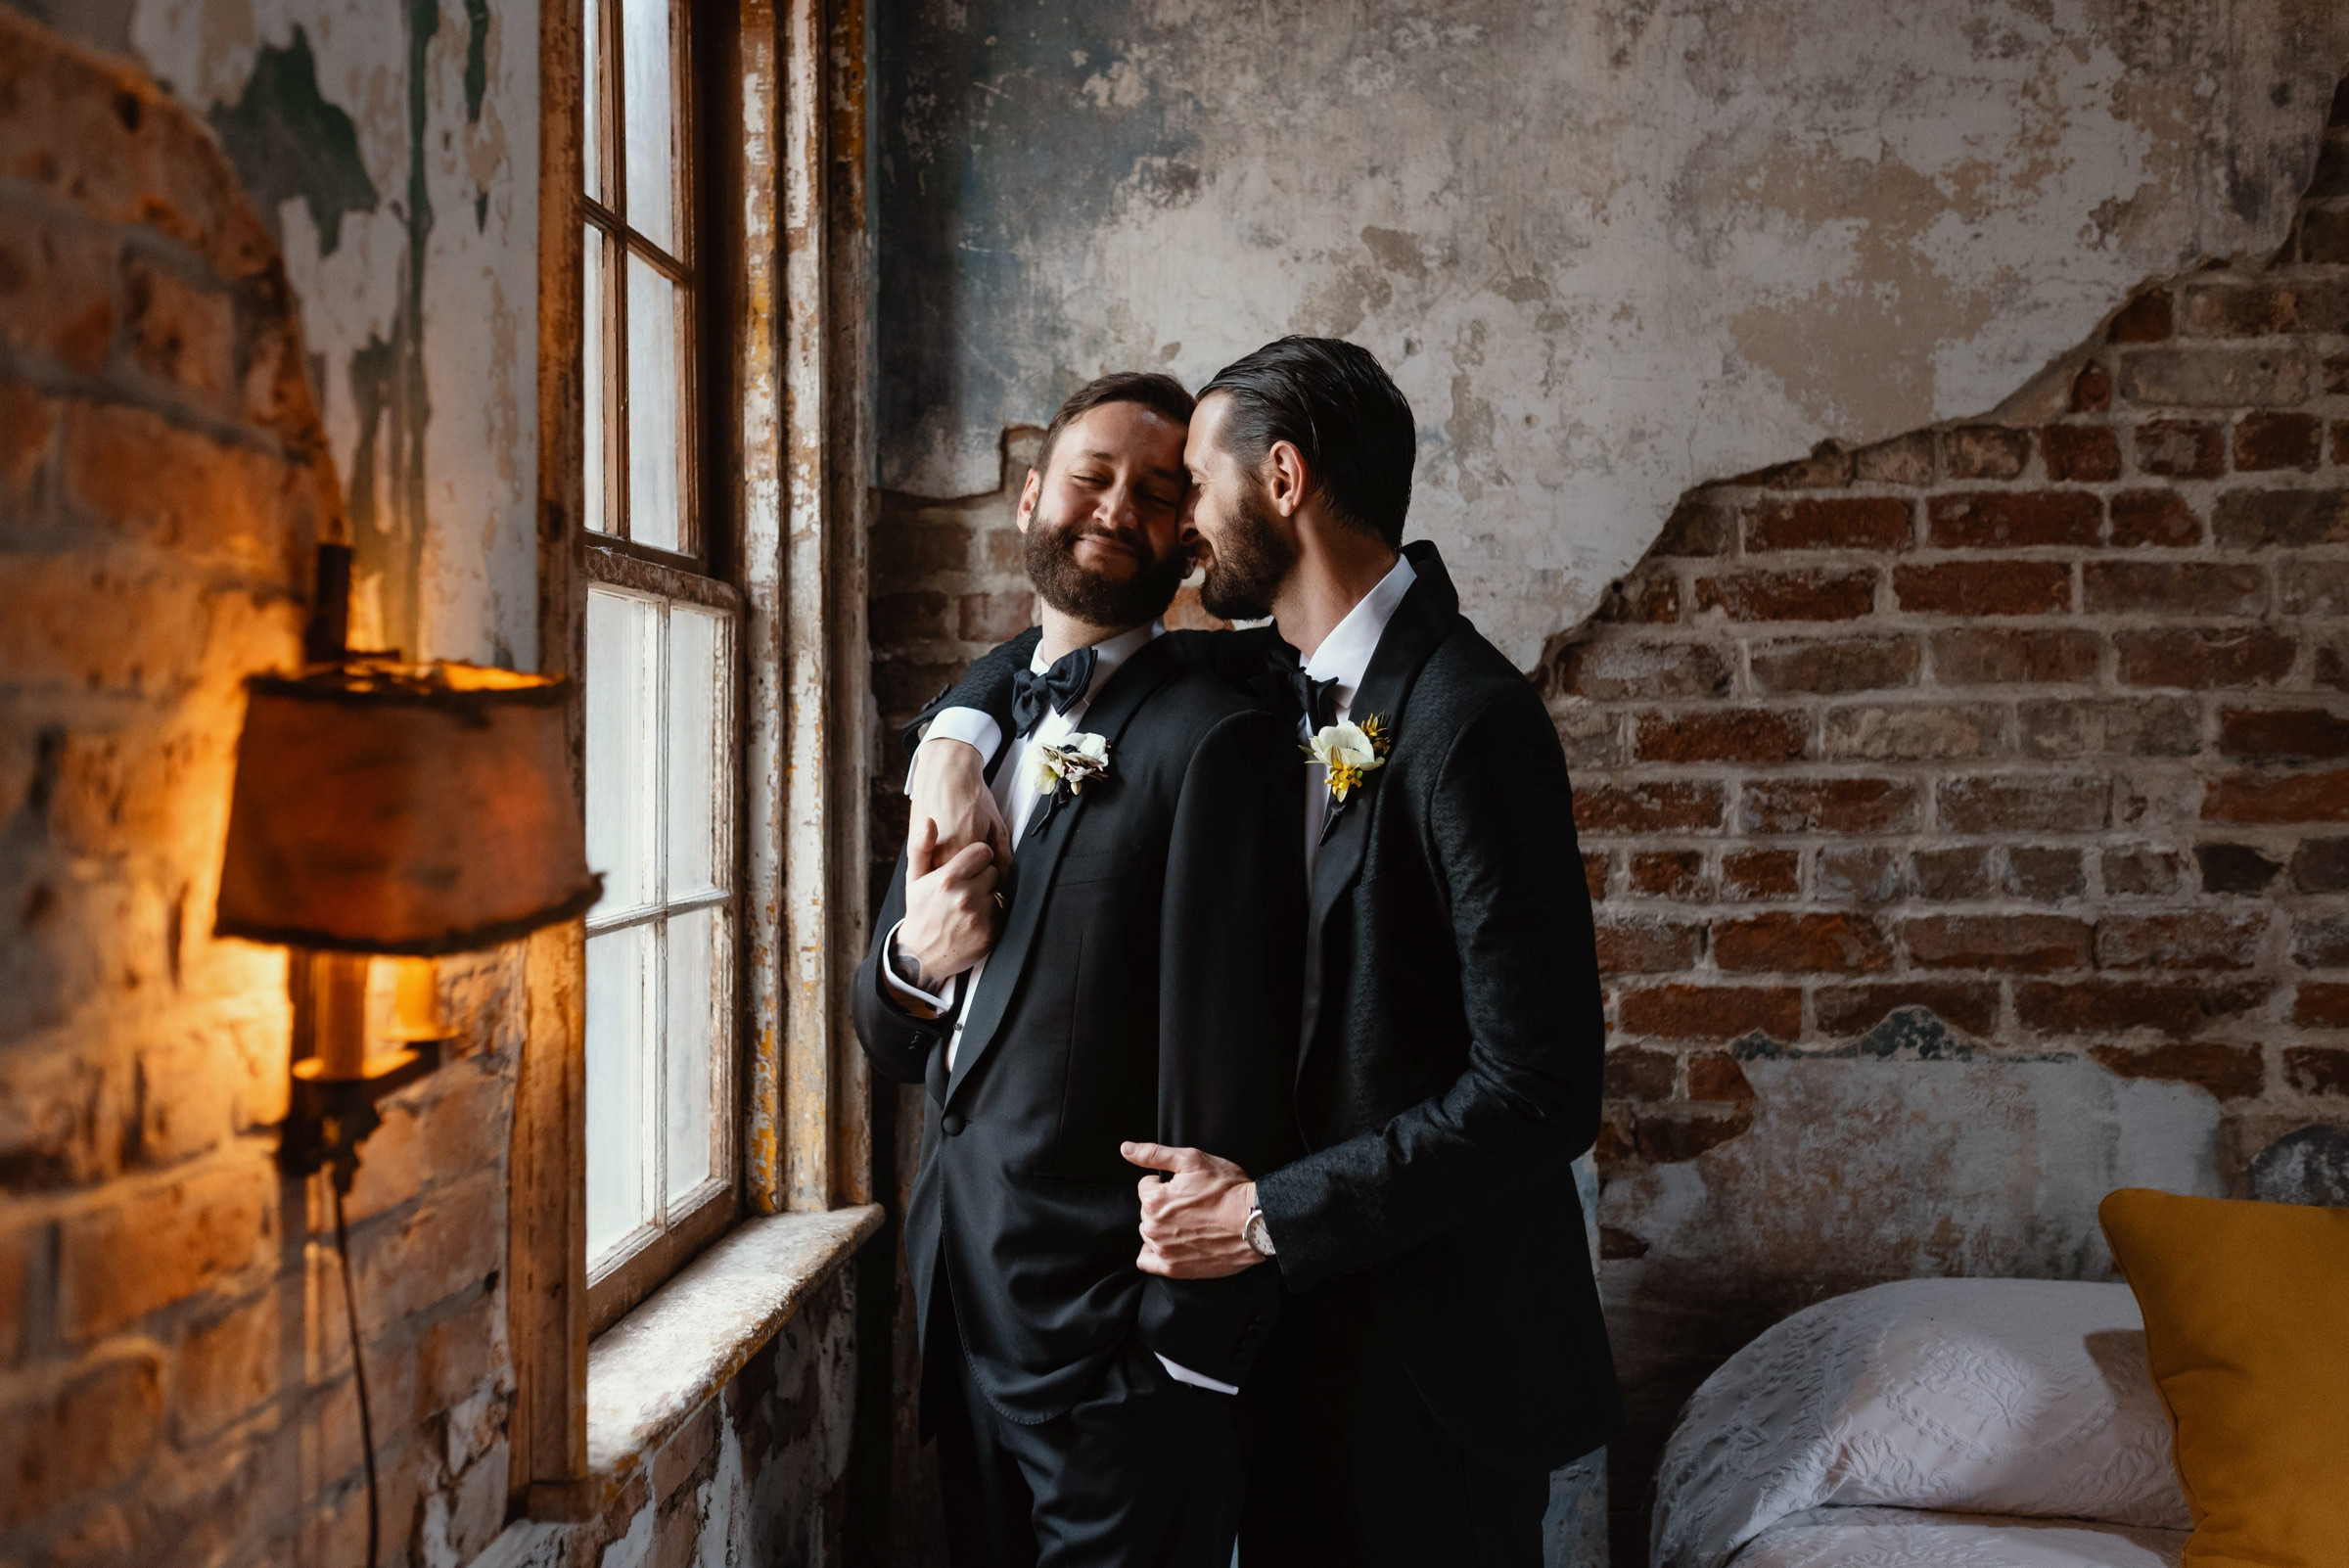 Grooms embracing in distressed style setting - photo by Dark Roux